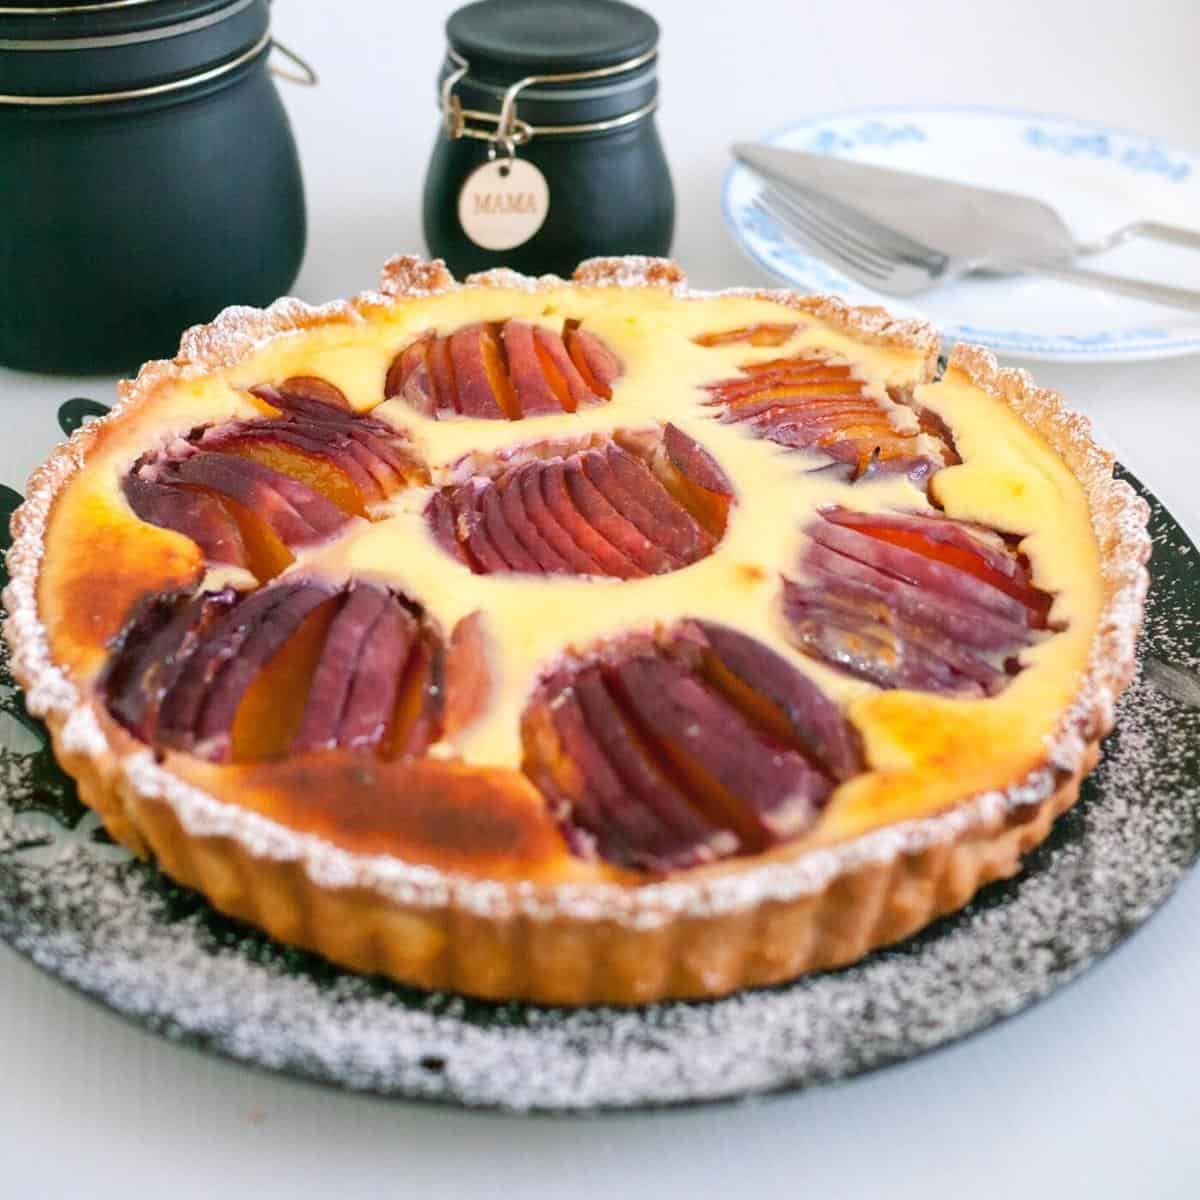 A tart with cream cheese filling and nectarines.